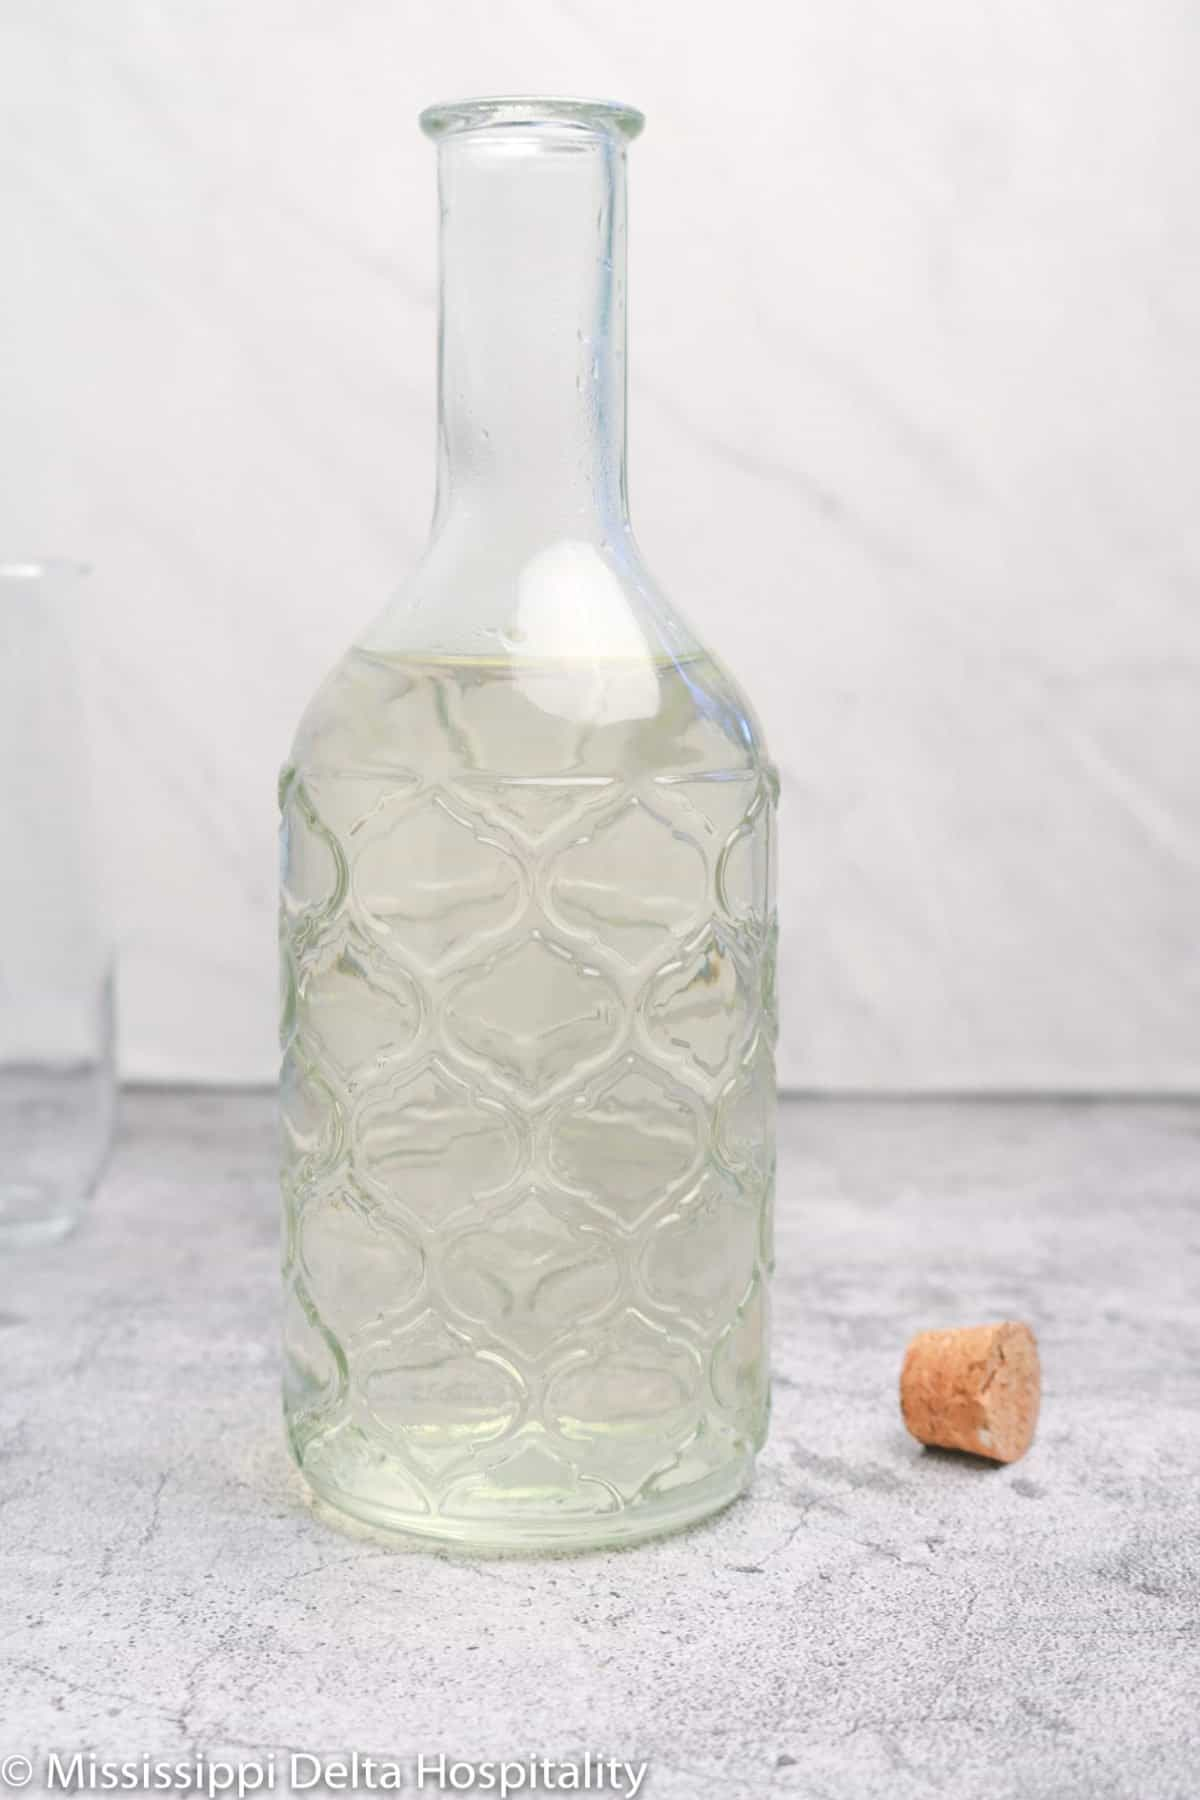 a bottle of simple syrup on a concrete board.